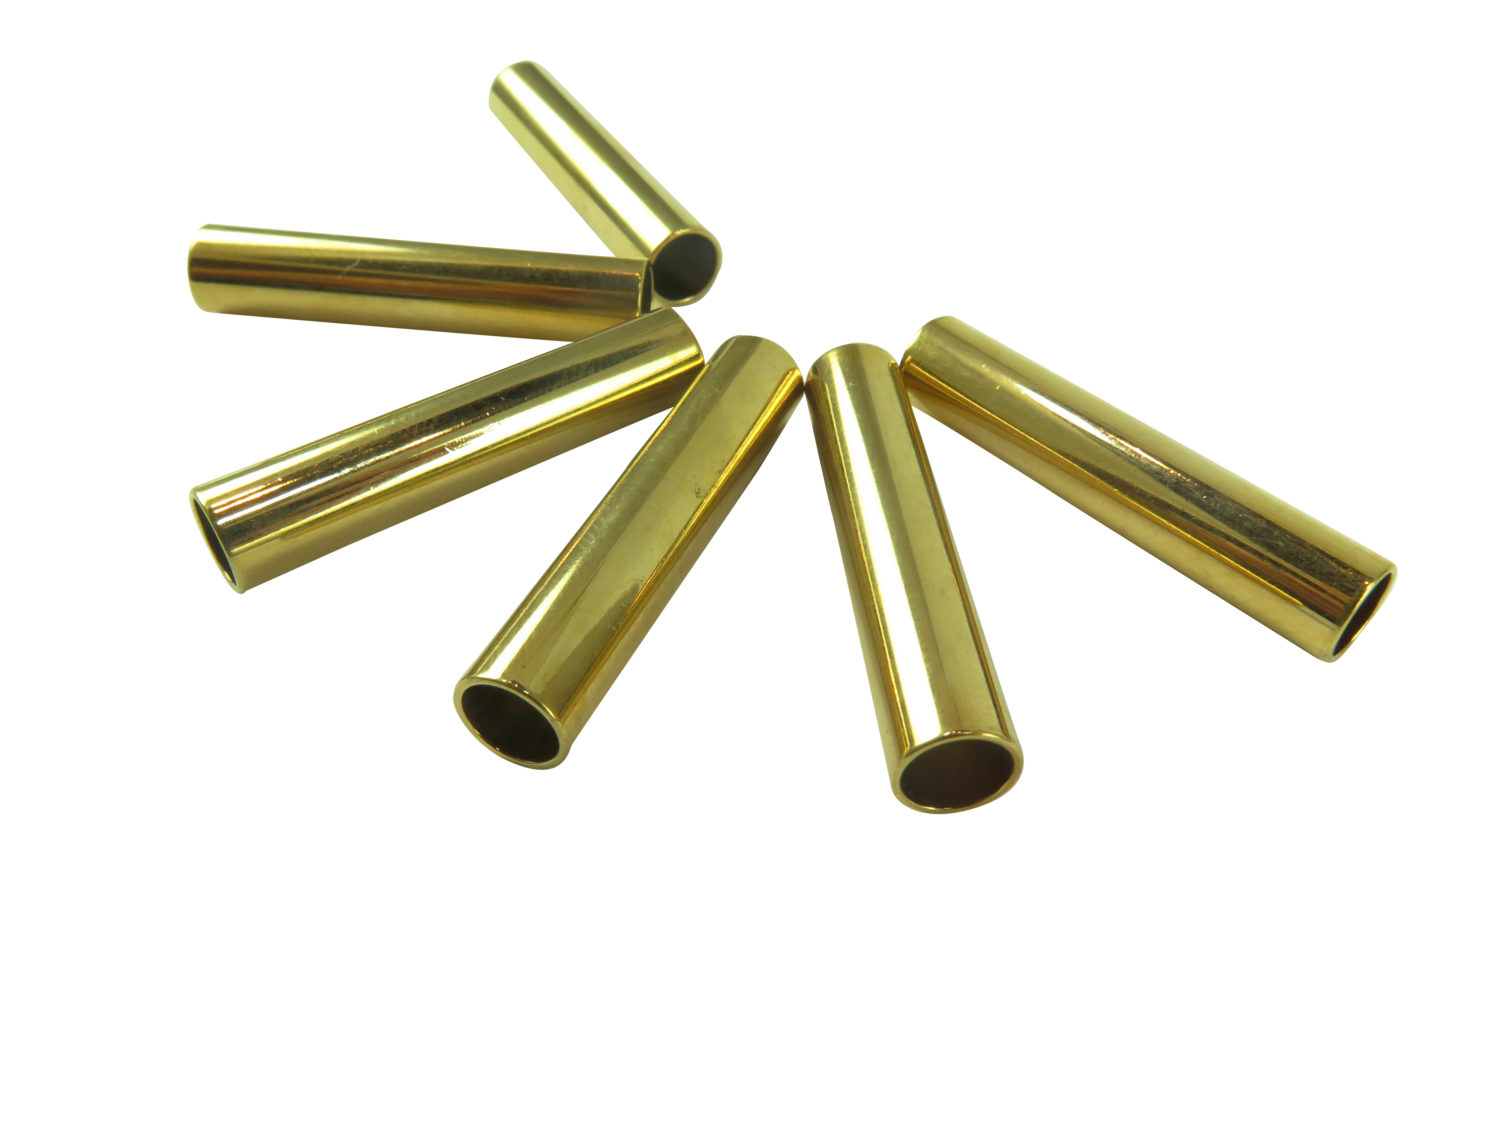 5x11mm 24K Shiny Gold Plated Connector Tubes Gold Plated Tubes Brass Tube Beads Thin Tube Bar Cylinder Tube Beads Beads Long Tubes